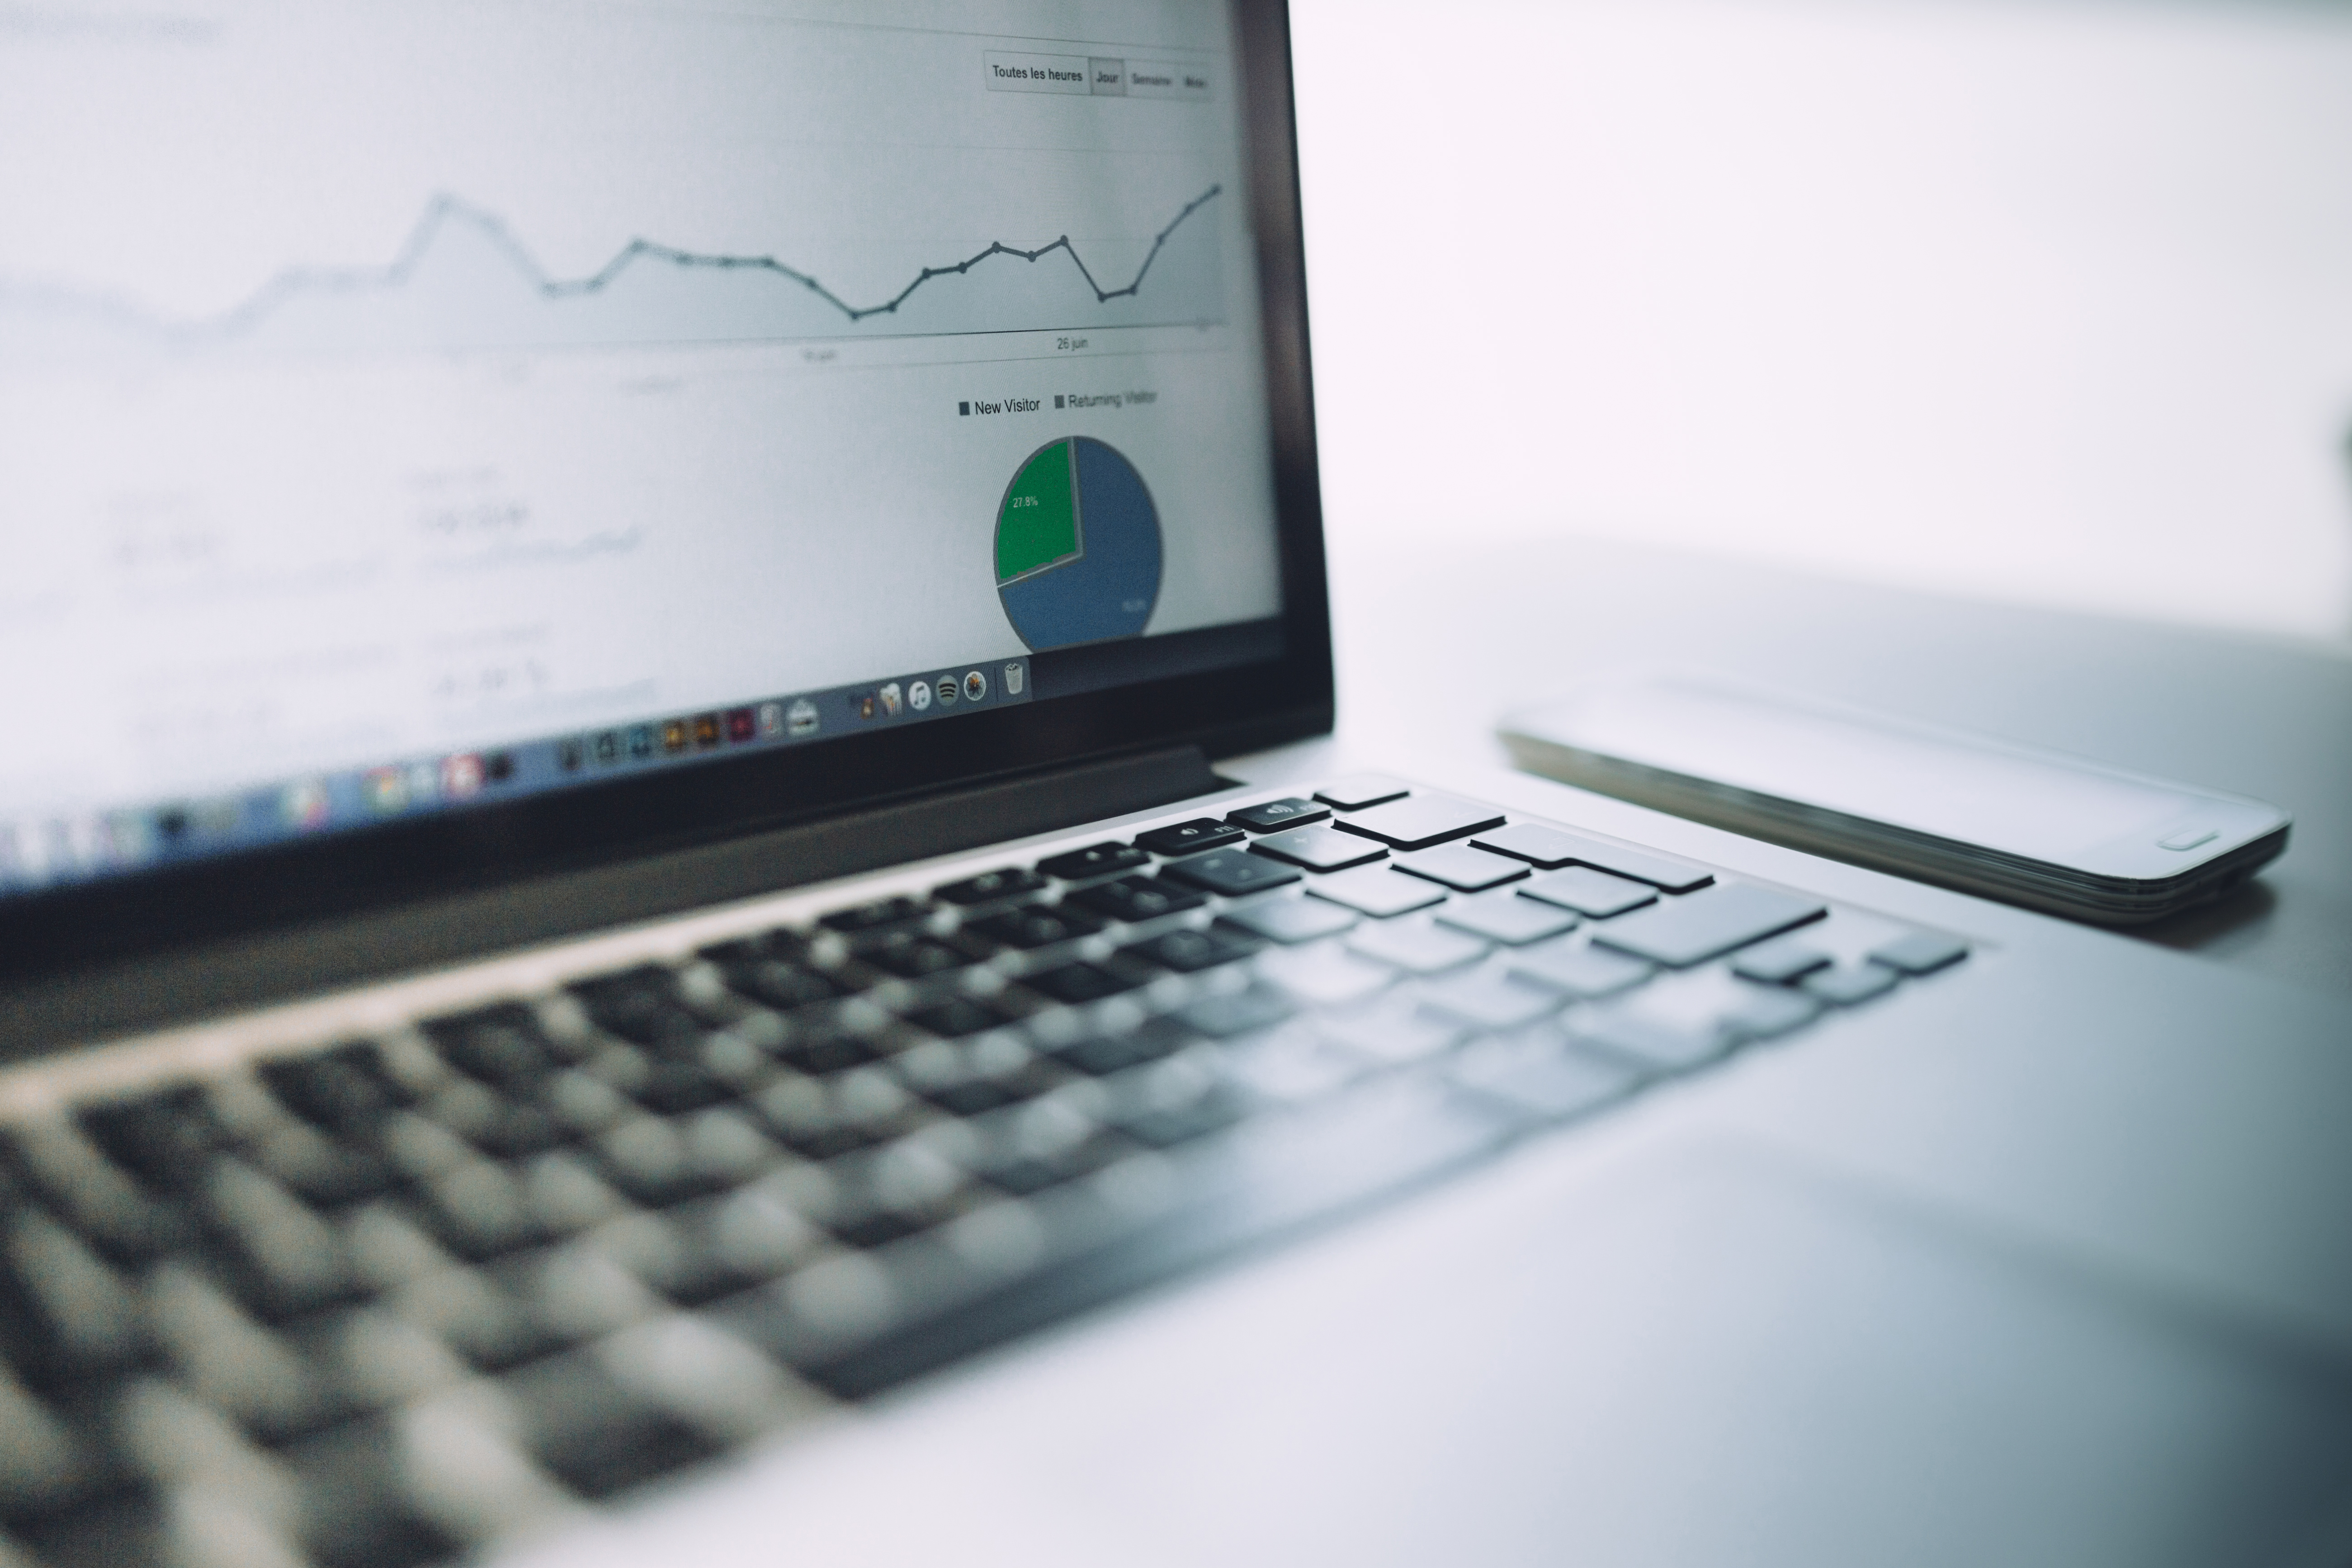 perform a financial analysis into a listed stock market company of your choice.